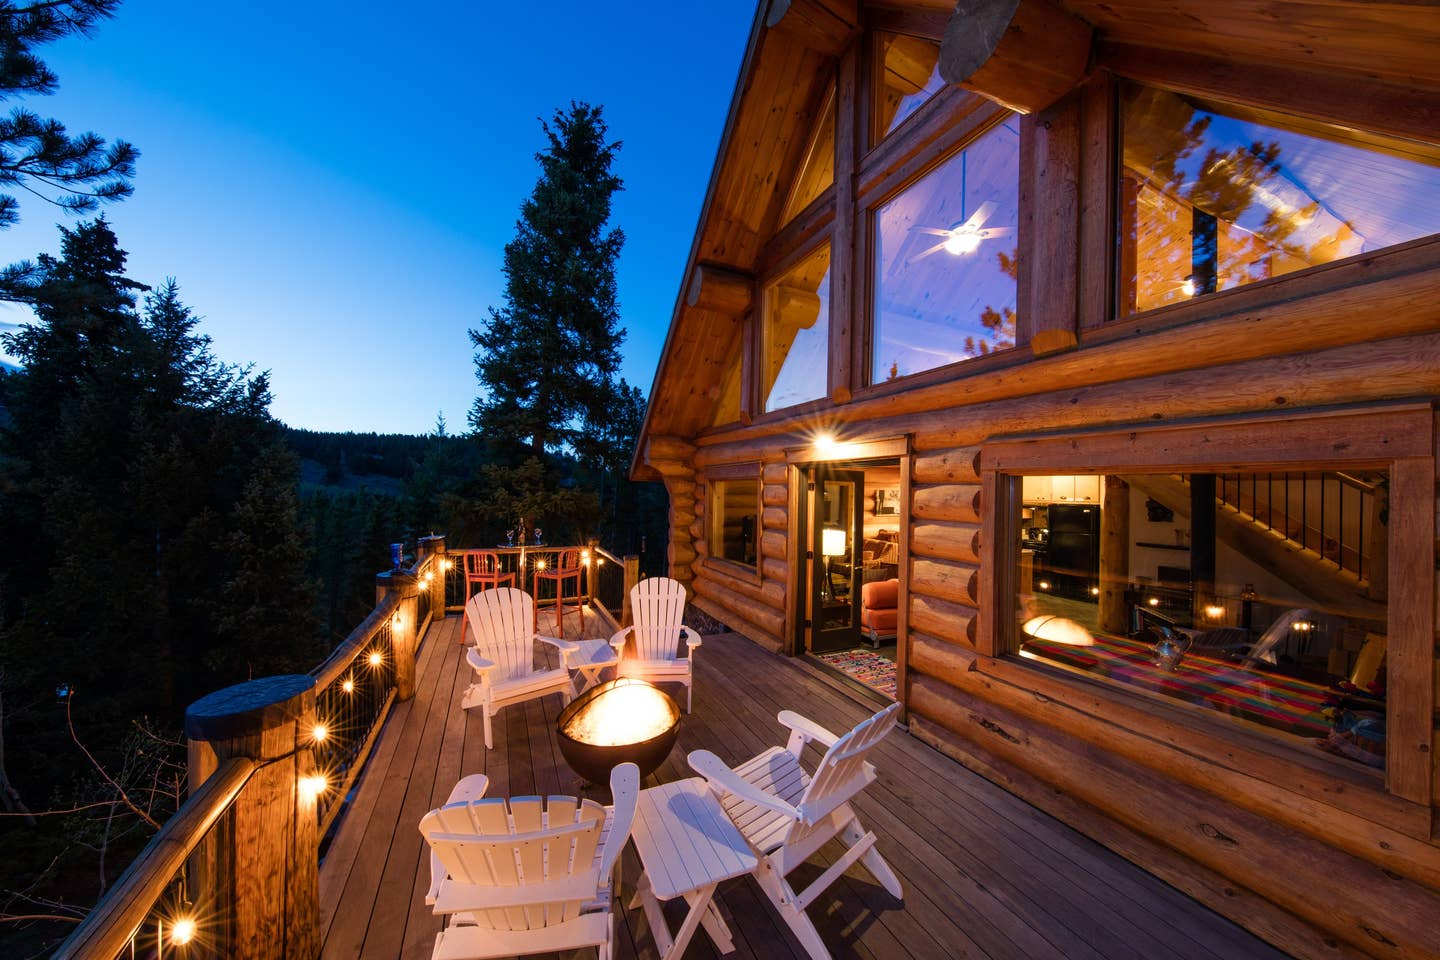 Best Airbnbs in Colorado